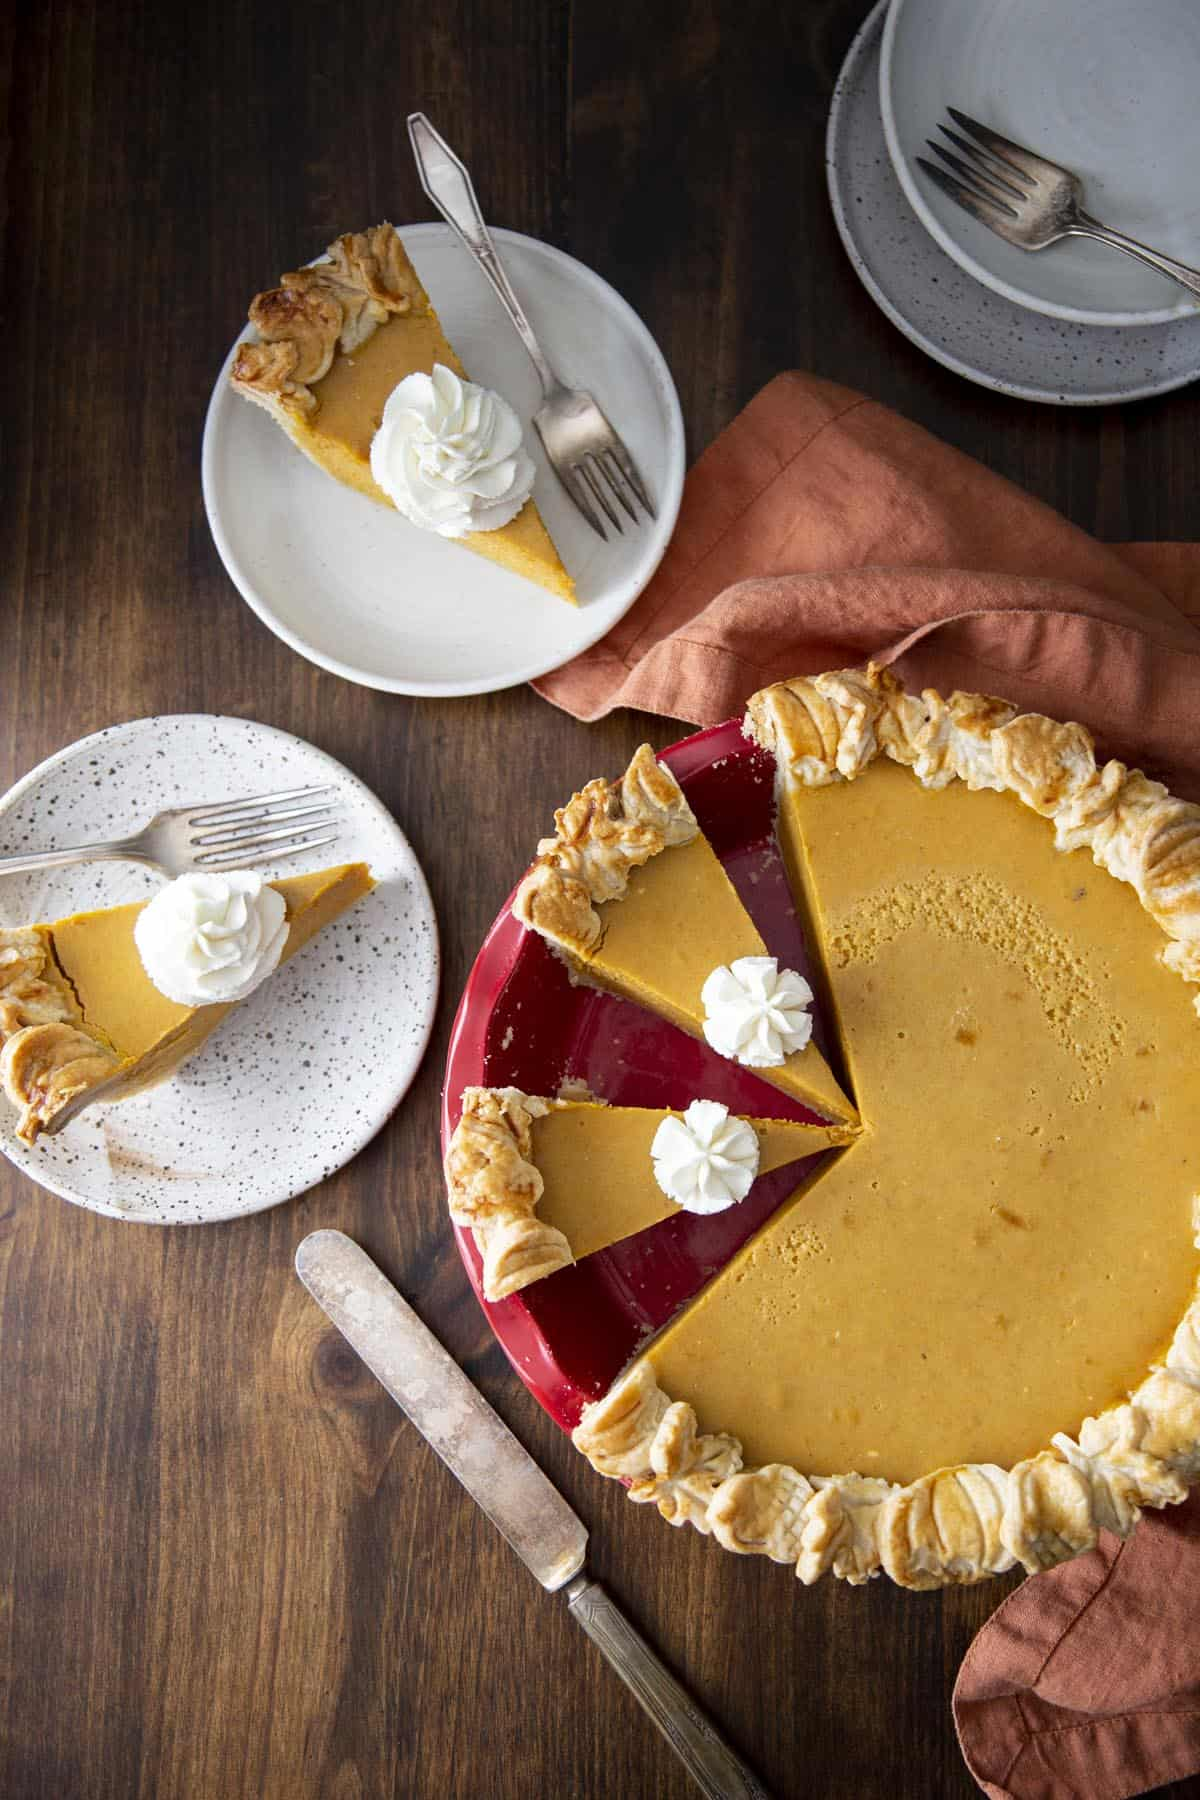 A pumpkin pie in a red pie dish and slices of pumpkin pies on plates